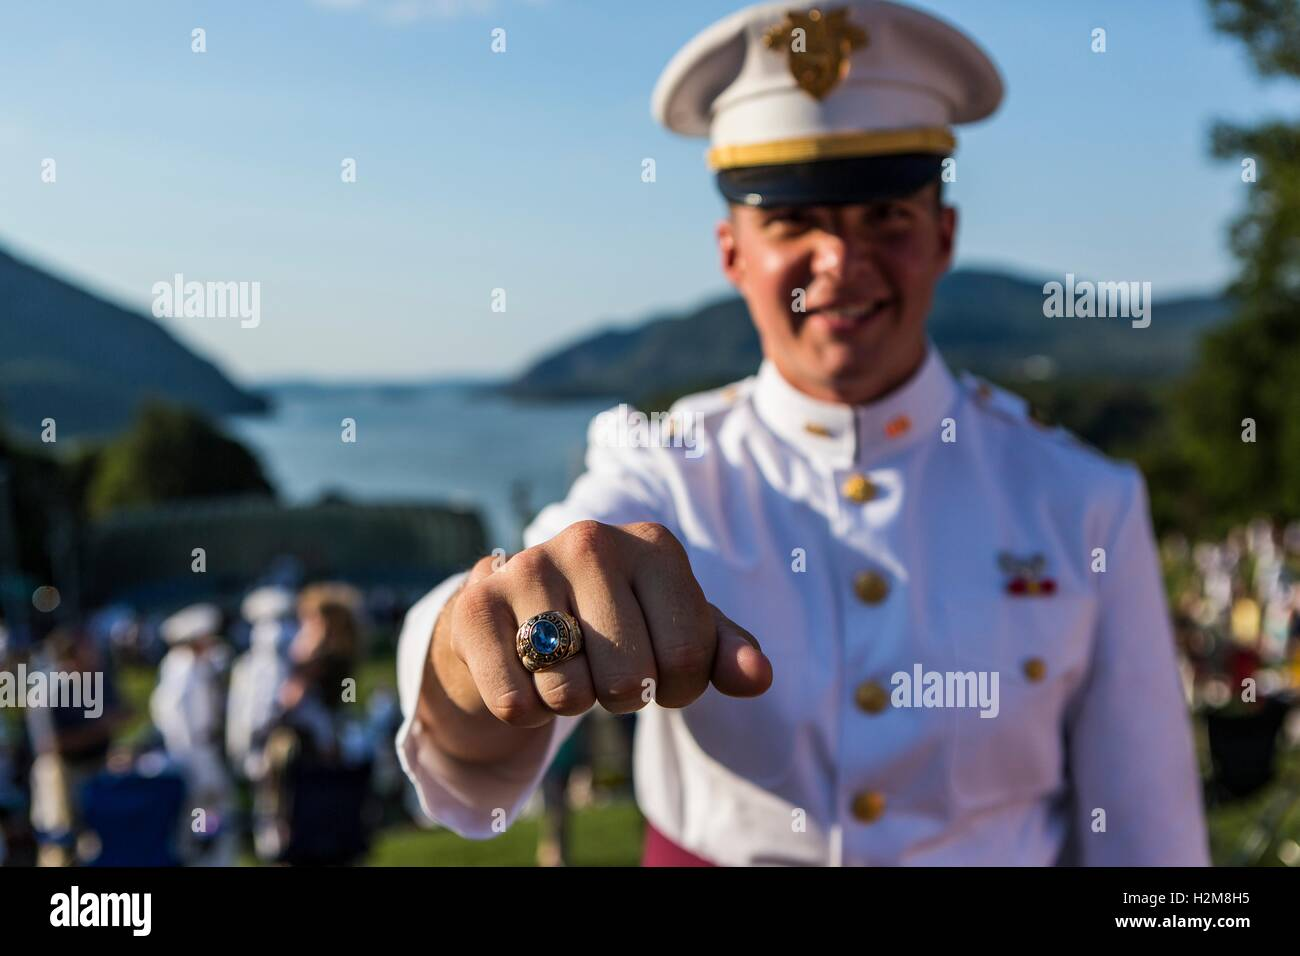 A U.S. Military Academy Class of 2017 senior student shows off his class ring during the annual Ring Ceremony at - Stock Image